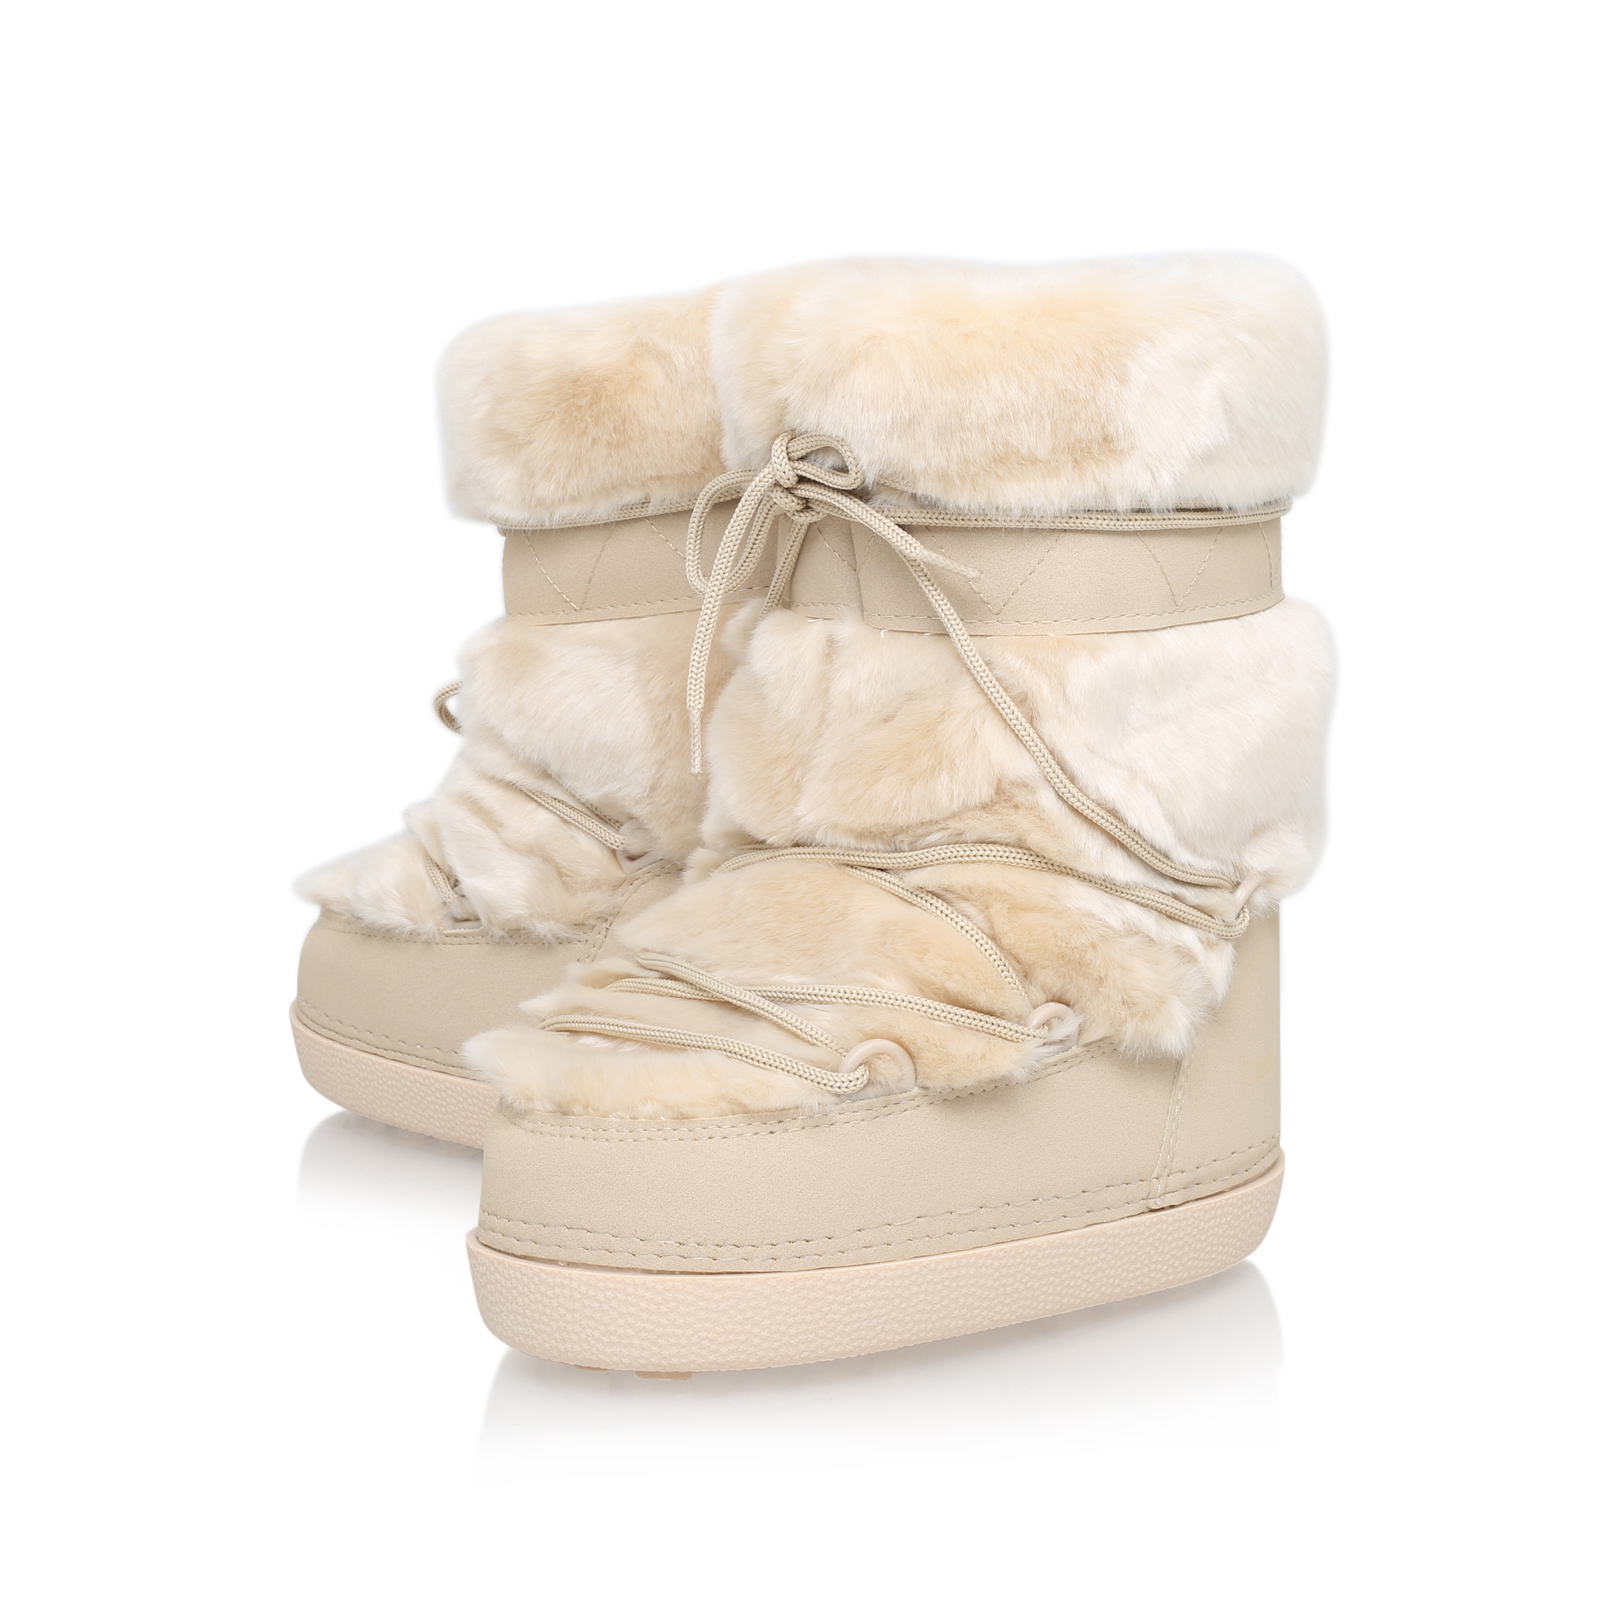 Chloé Faux Fur Snow Boot in Beige (Natural)